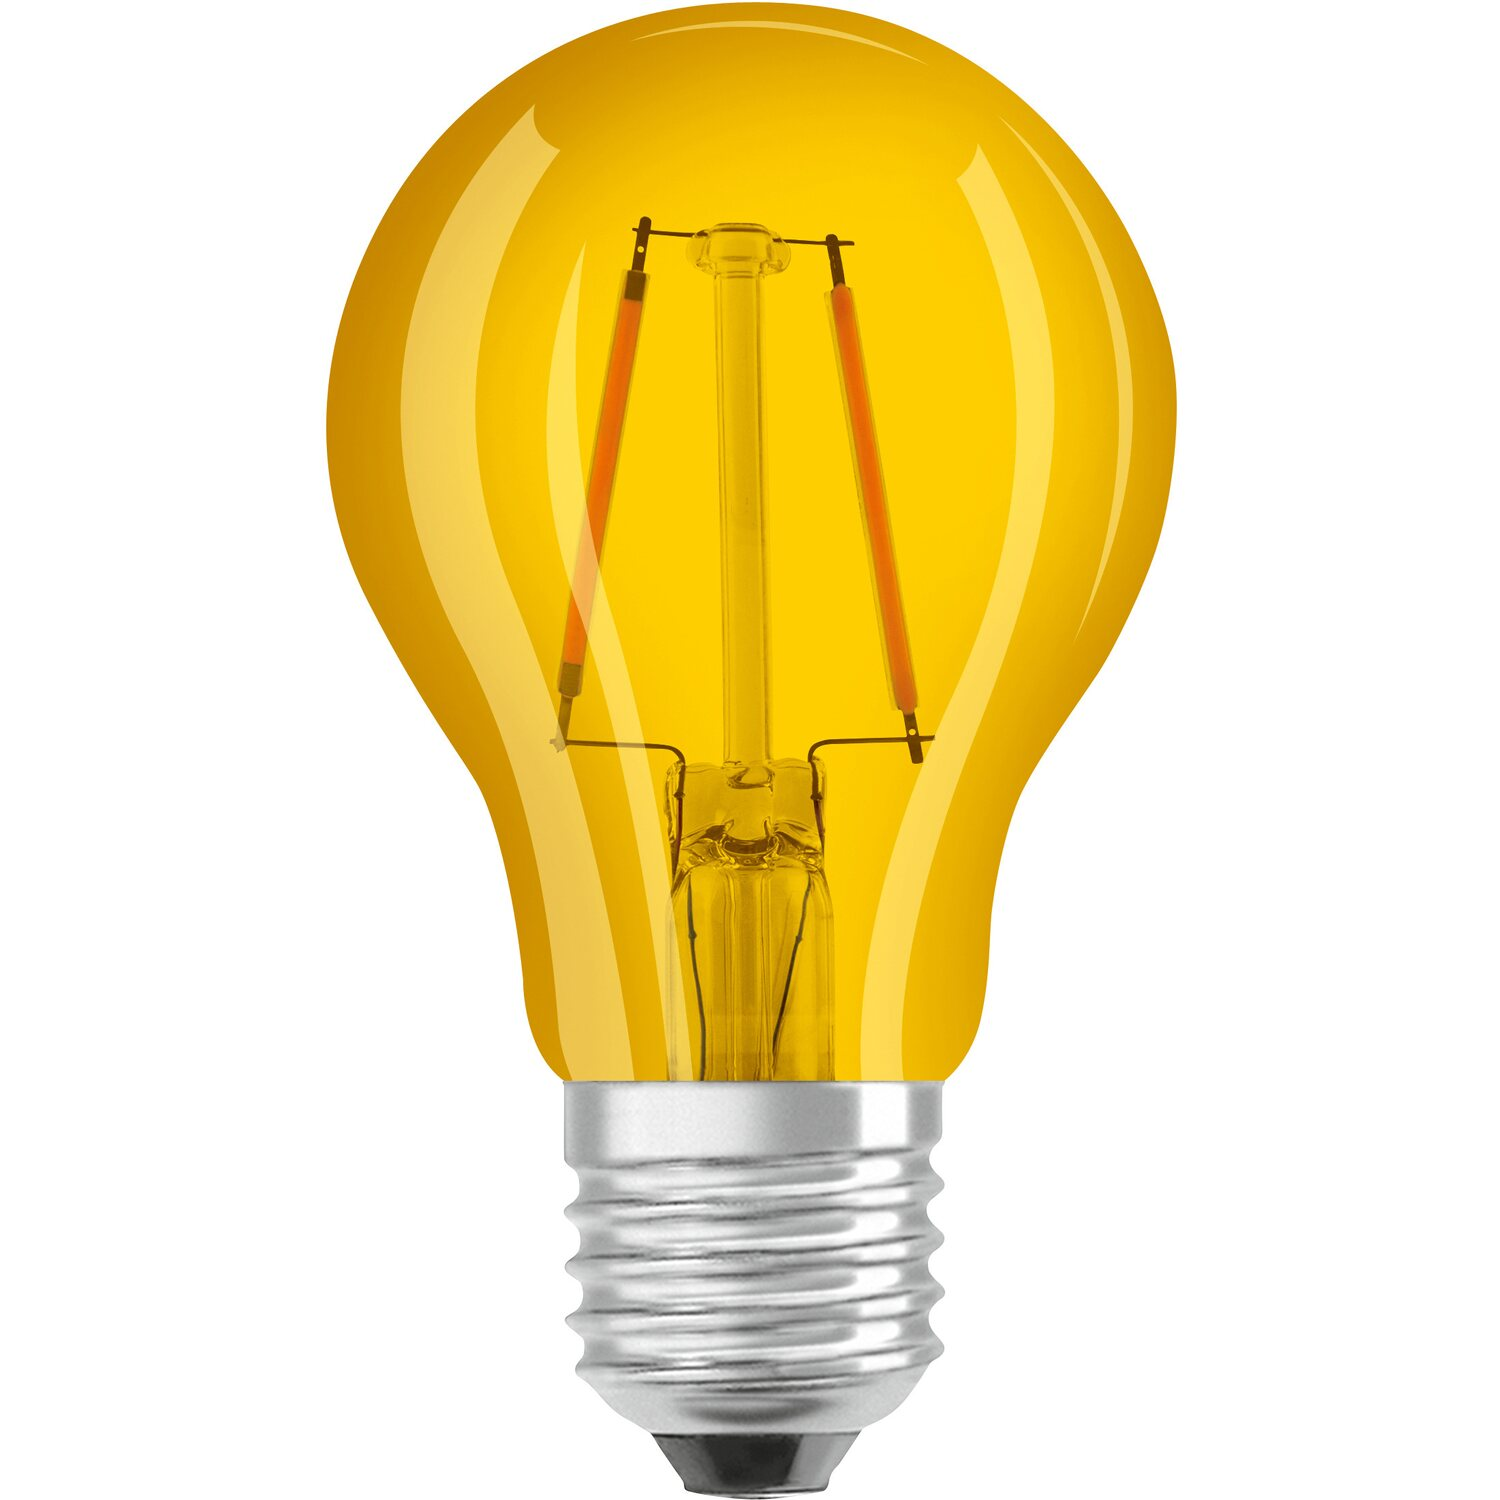 Osram lampadina led decor goccia e27 giallo acquista da obi for Offerte lampadine a led e 27